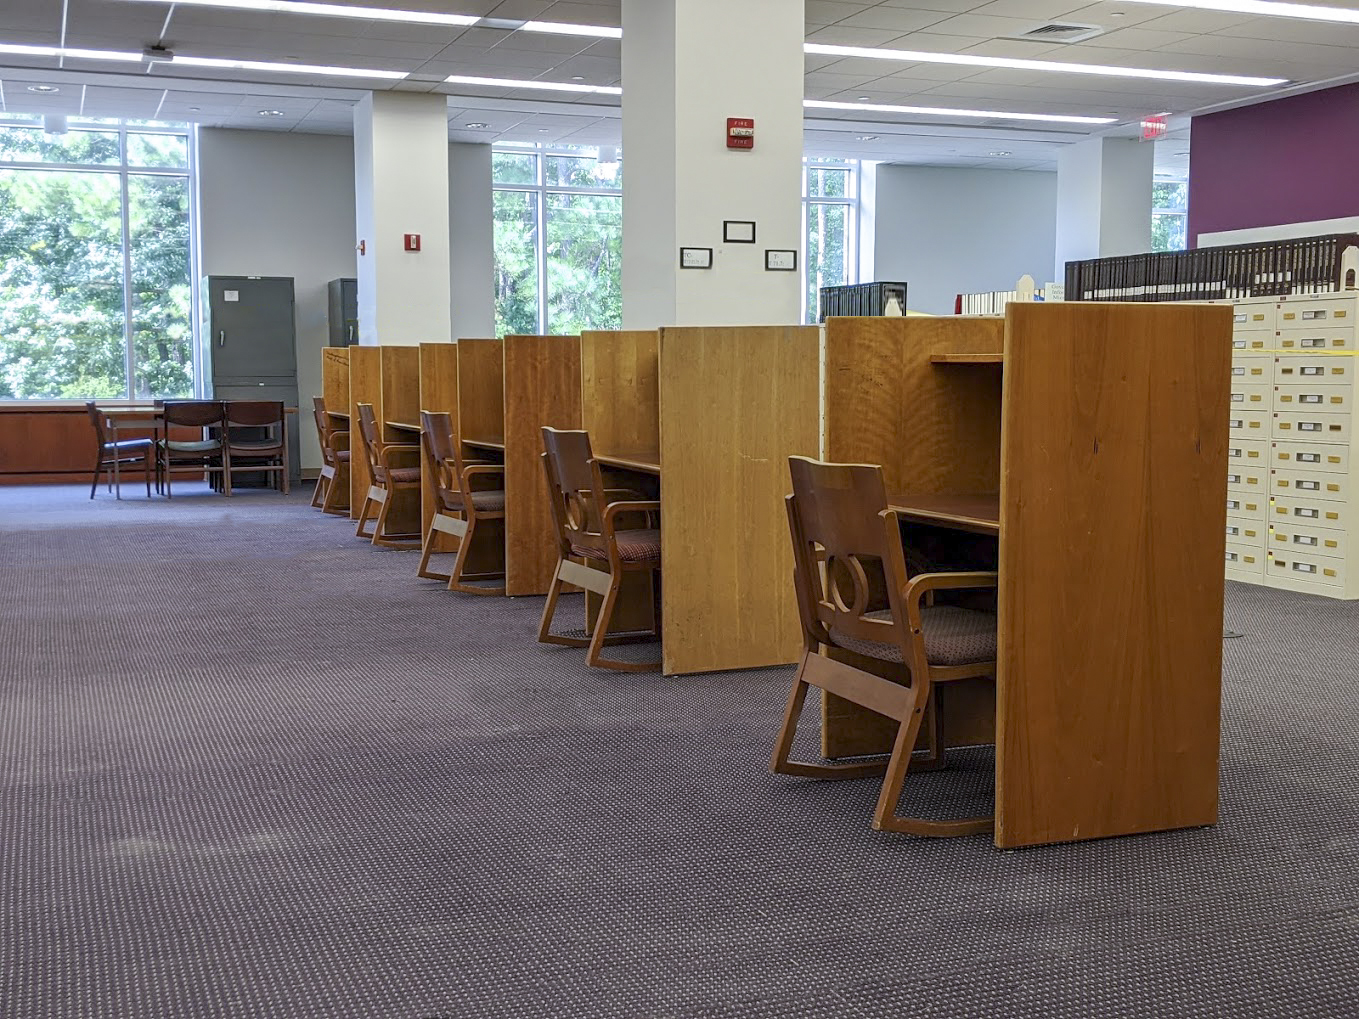 Study carrels set up in the new open Read & Relax area for students to reserve for Zoom meetings and classes.